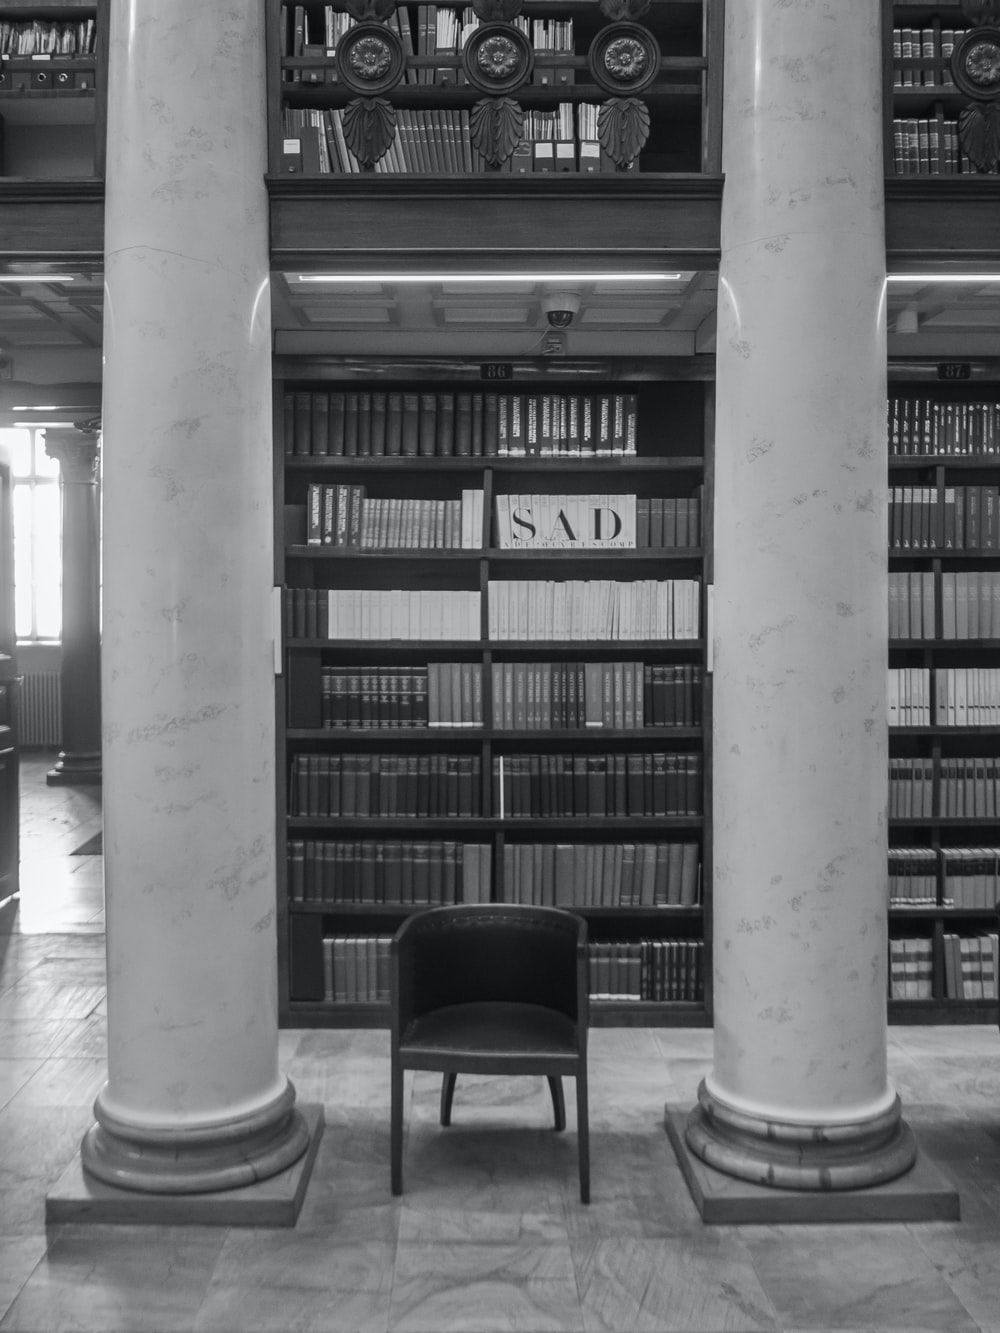 vacant black armchair in library